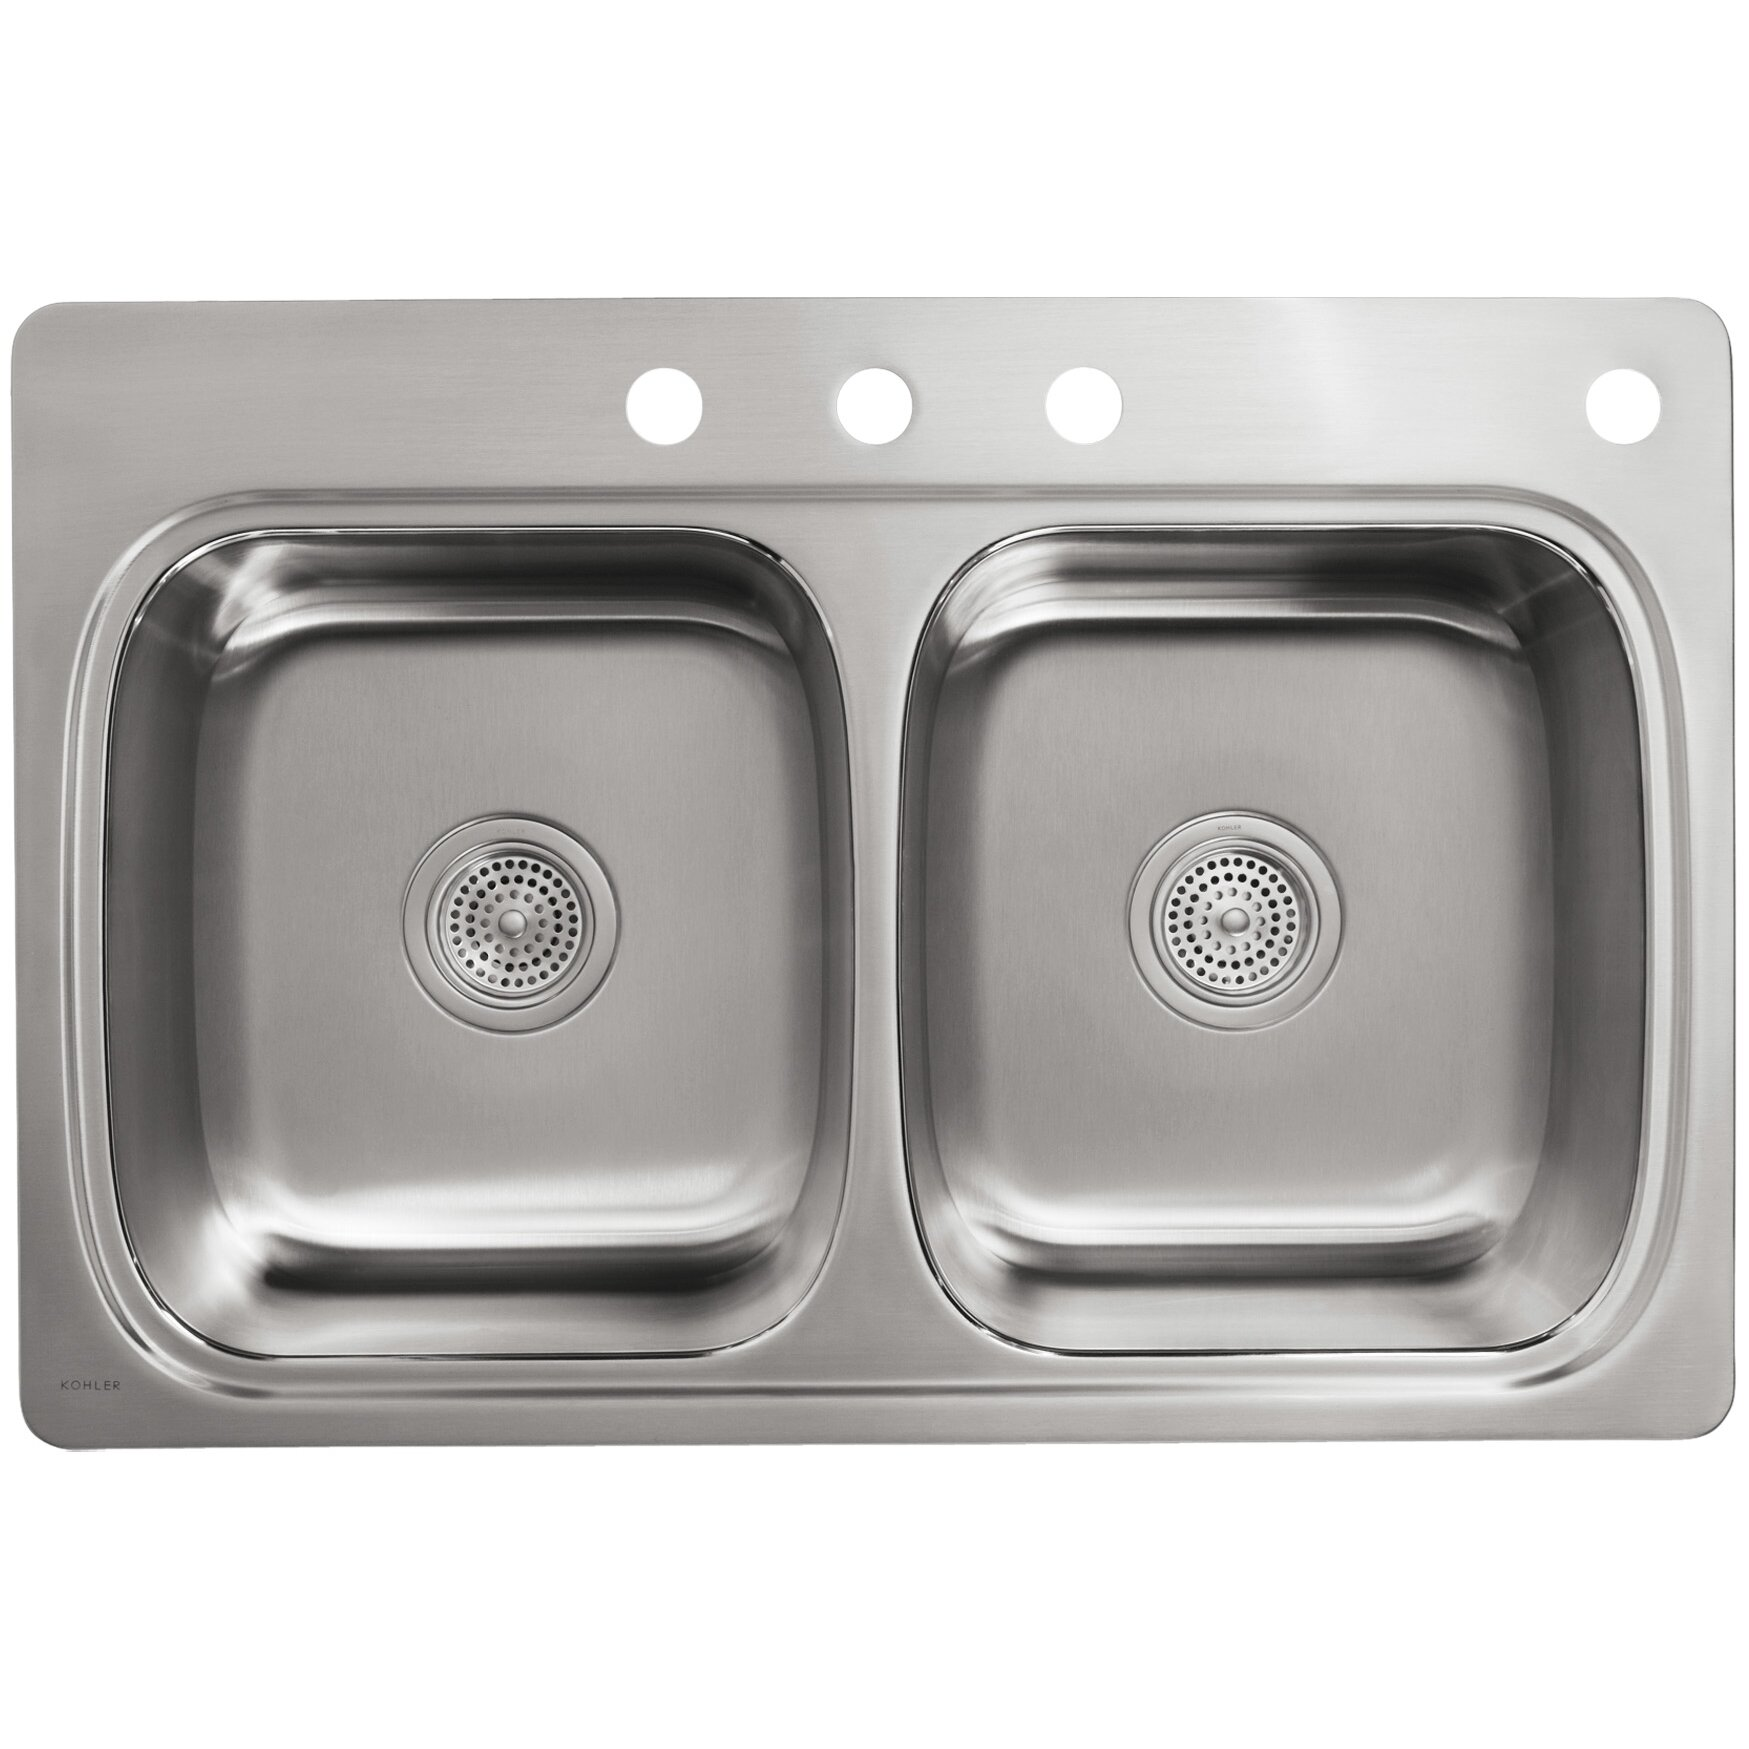 Kohler Verse Top Mount Double Equal Bowl Kitchen Sink With 4 Faucet Holes Wayfair